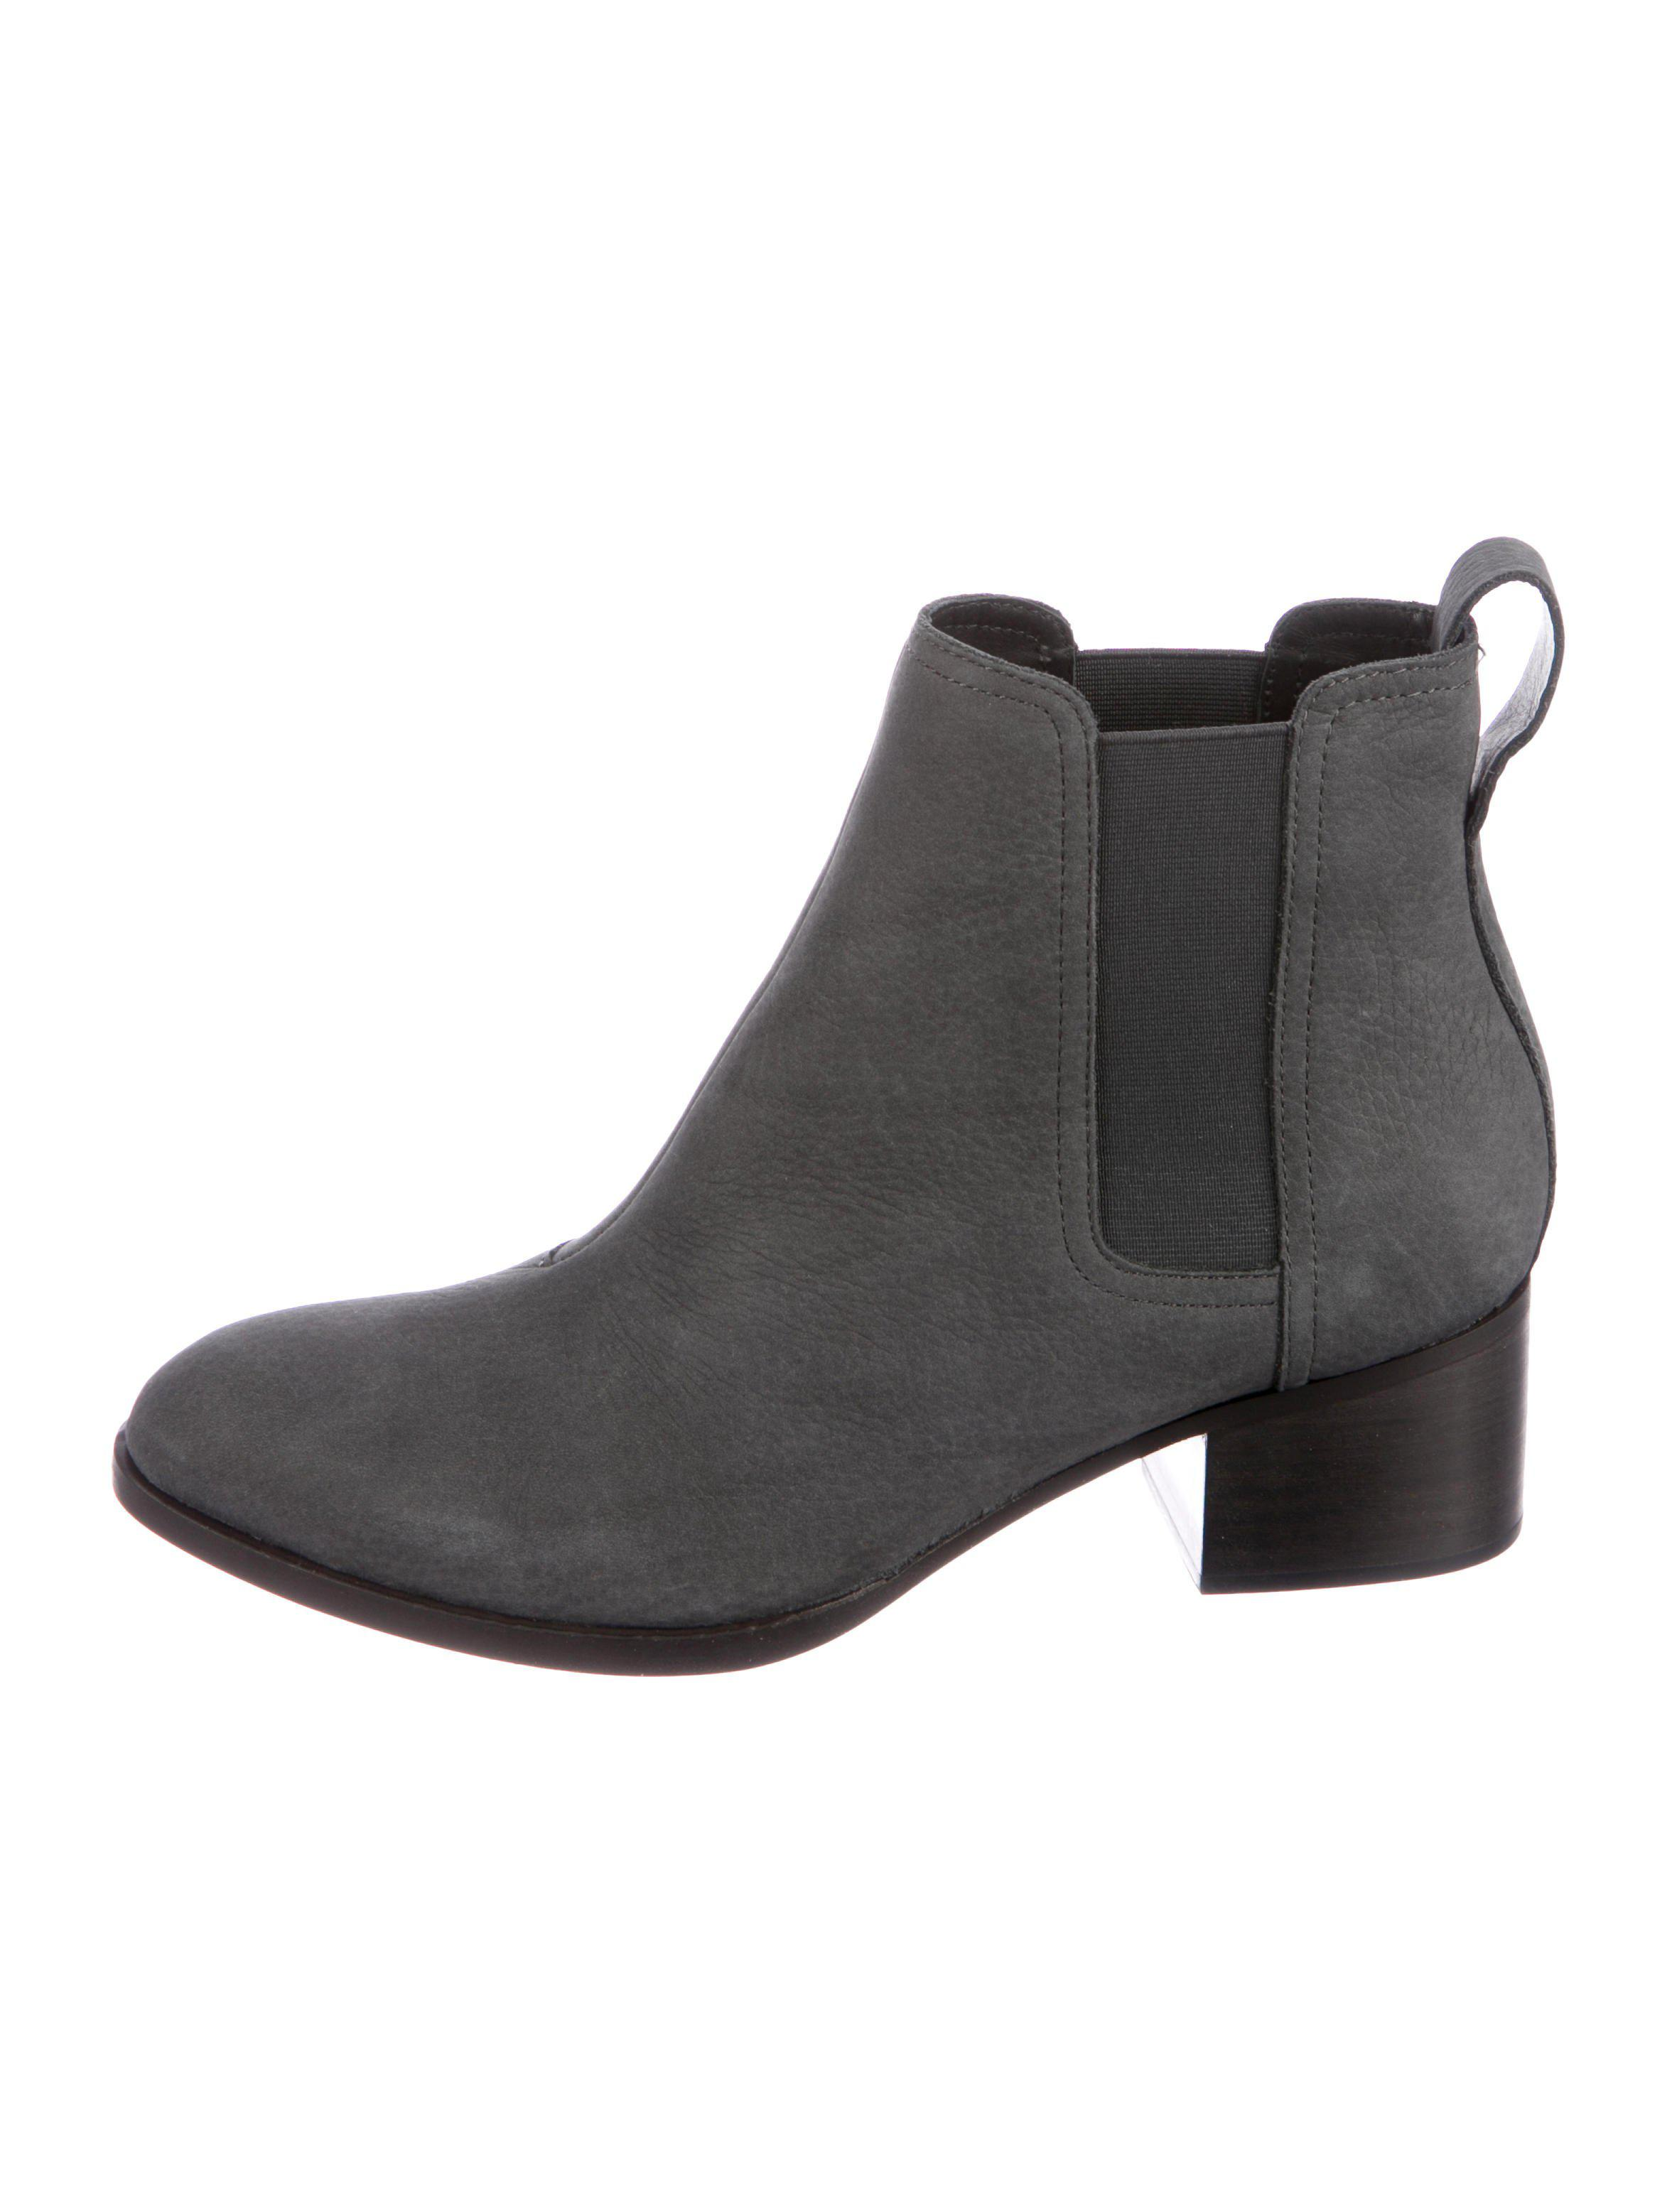 Rag & Bone Walker Ankle Boot w/ Tags cheap clearance store authentic sale online 2014 new cheap online V9ut5UK